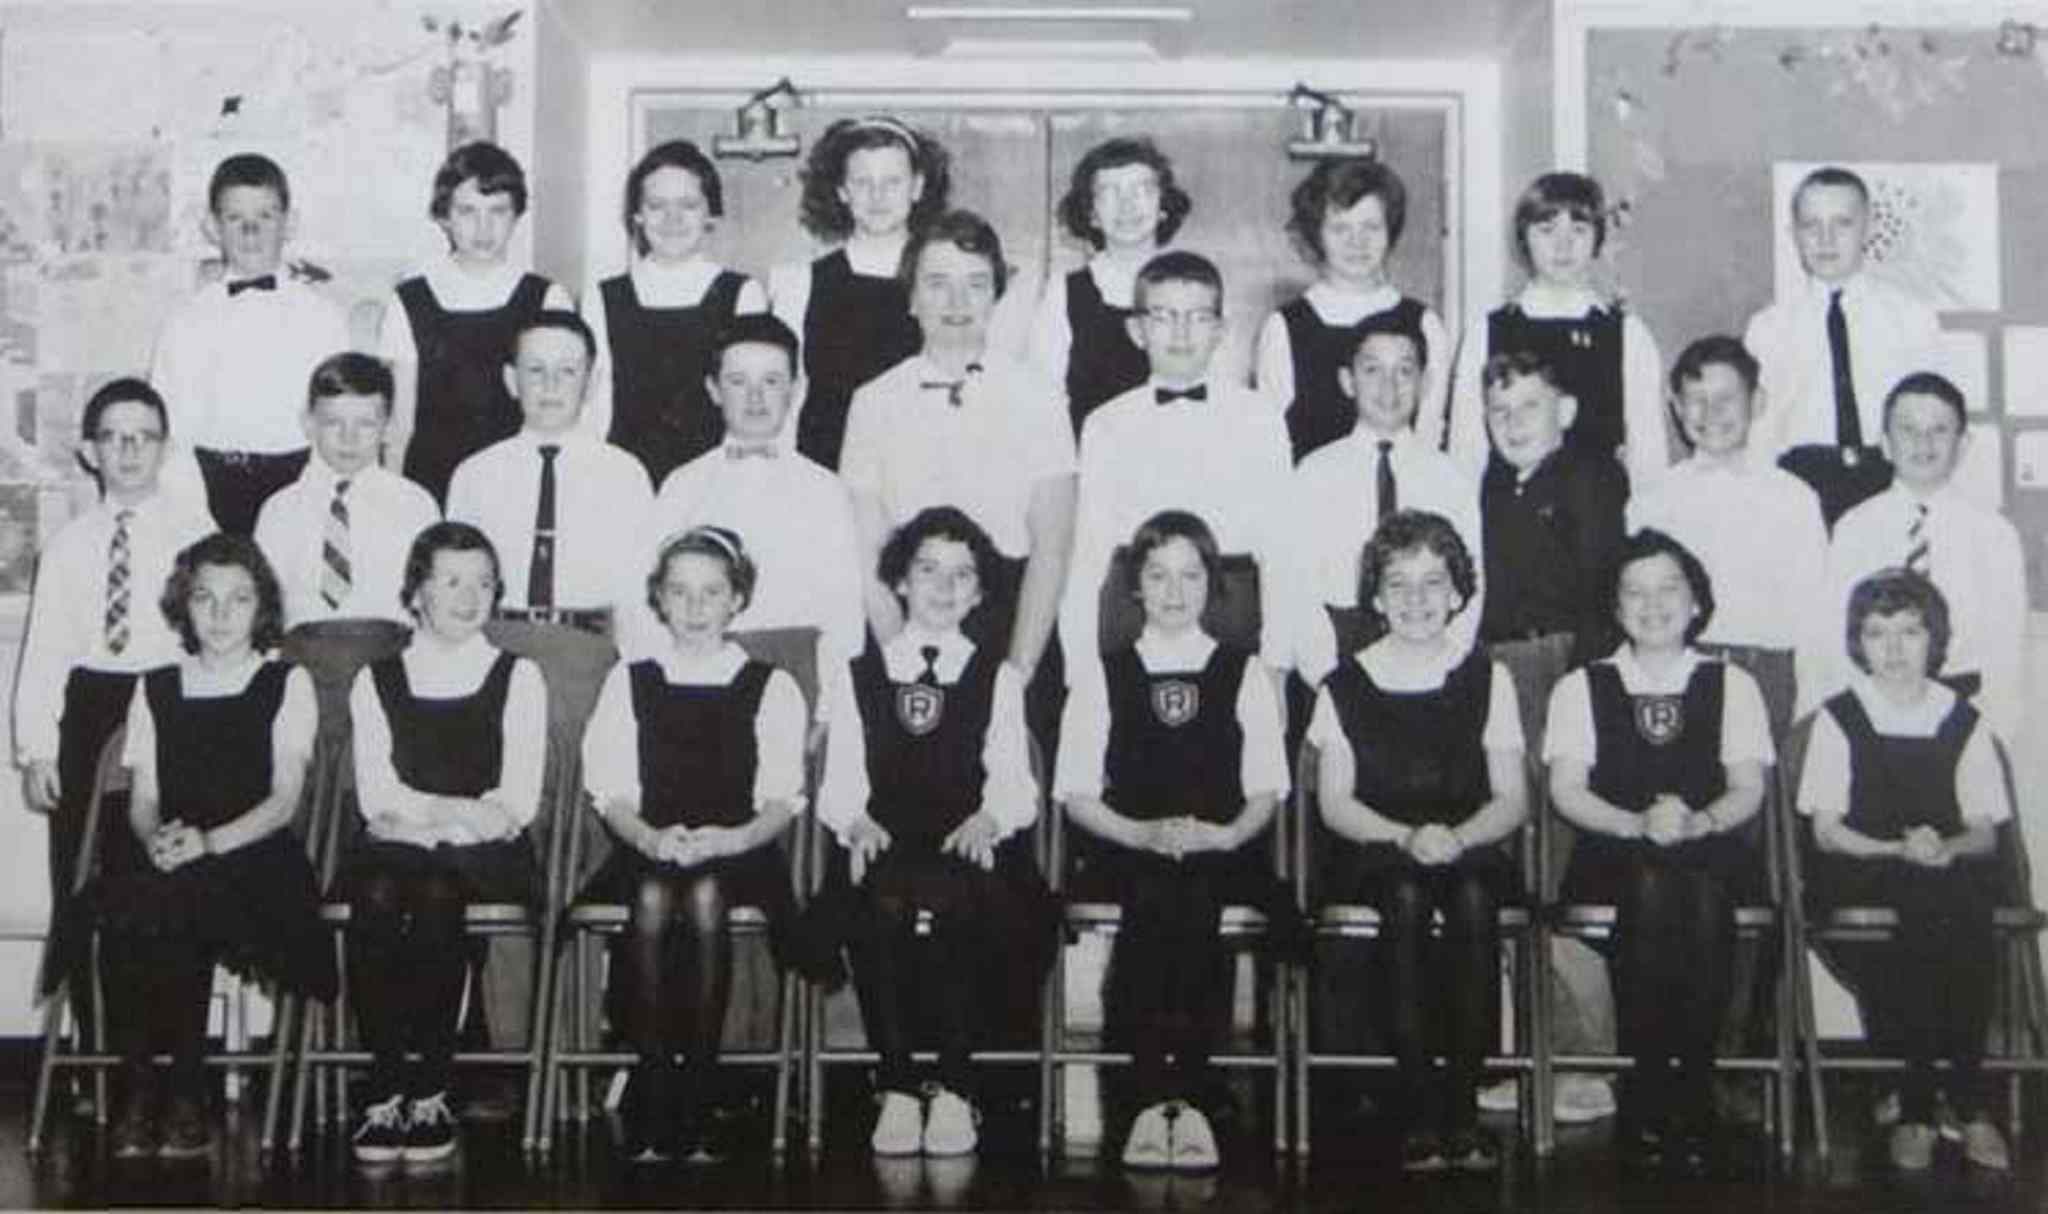 One of teacher Miss Pearson's Major Work classes at Rockwood.  Pearson is in the middle of the second row.